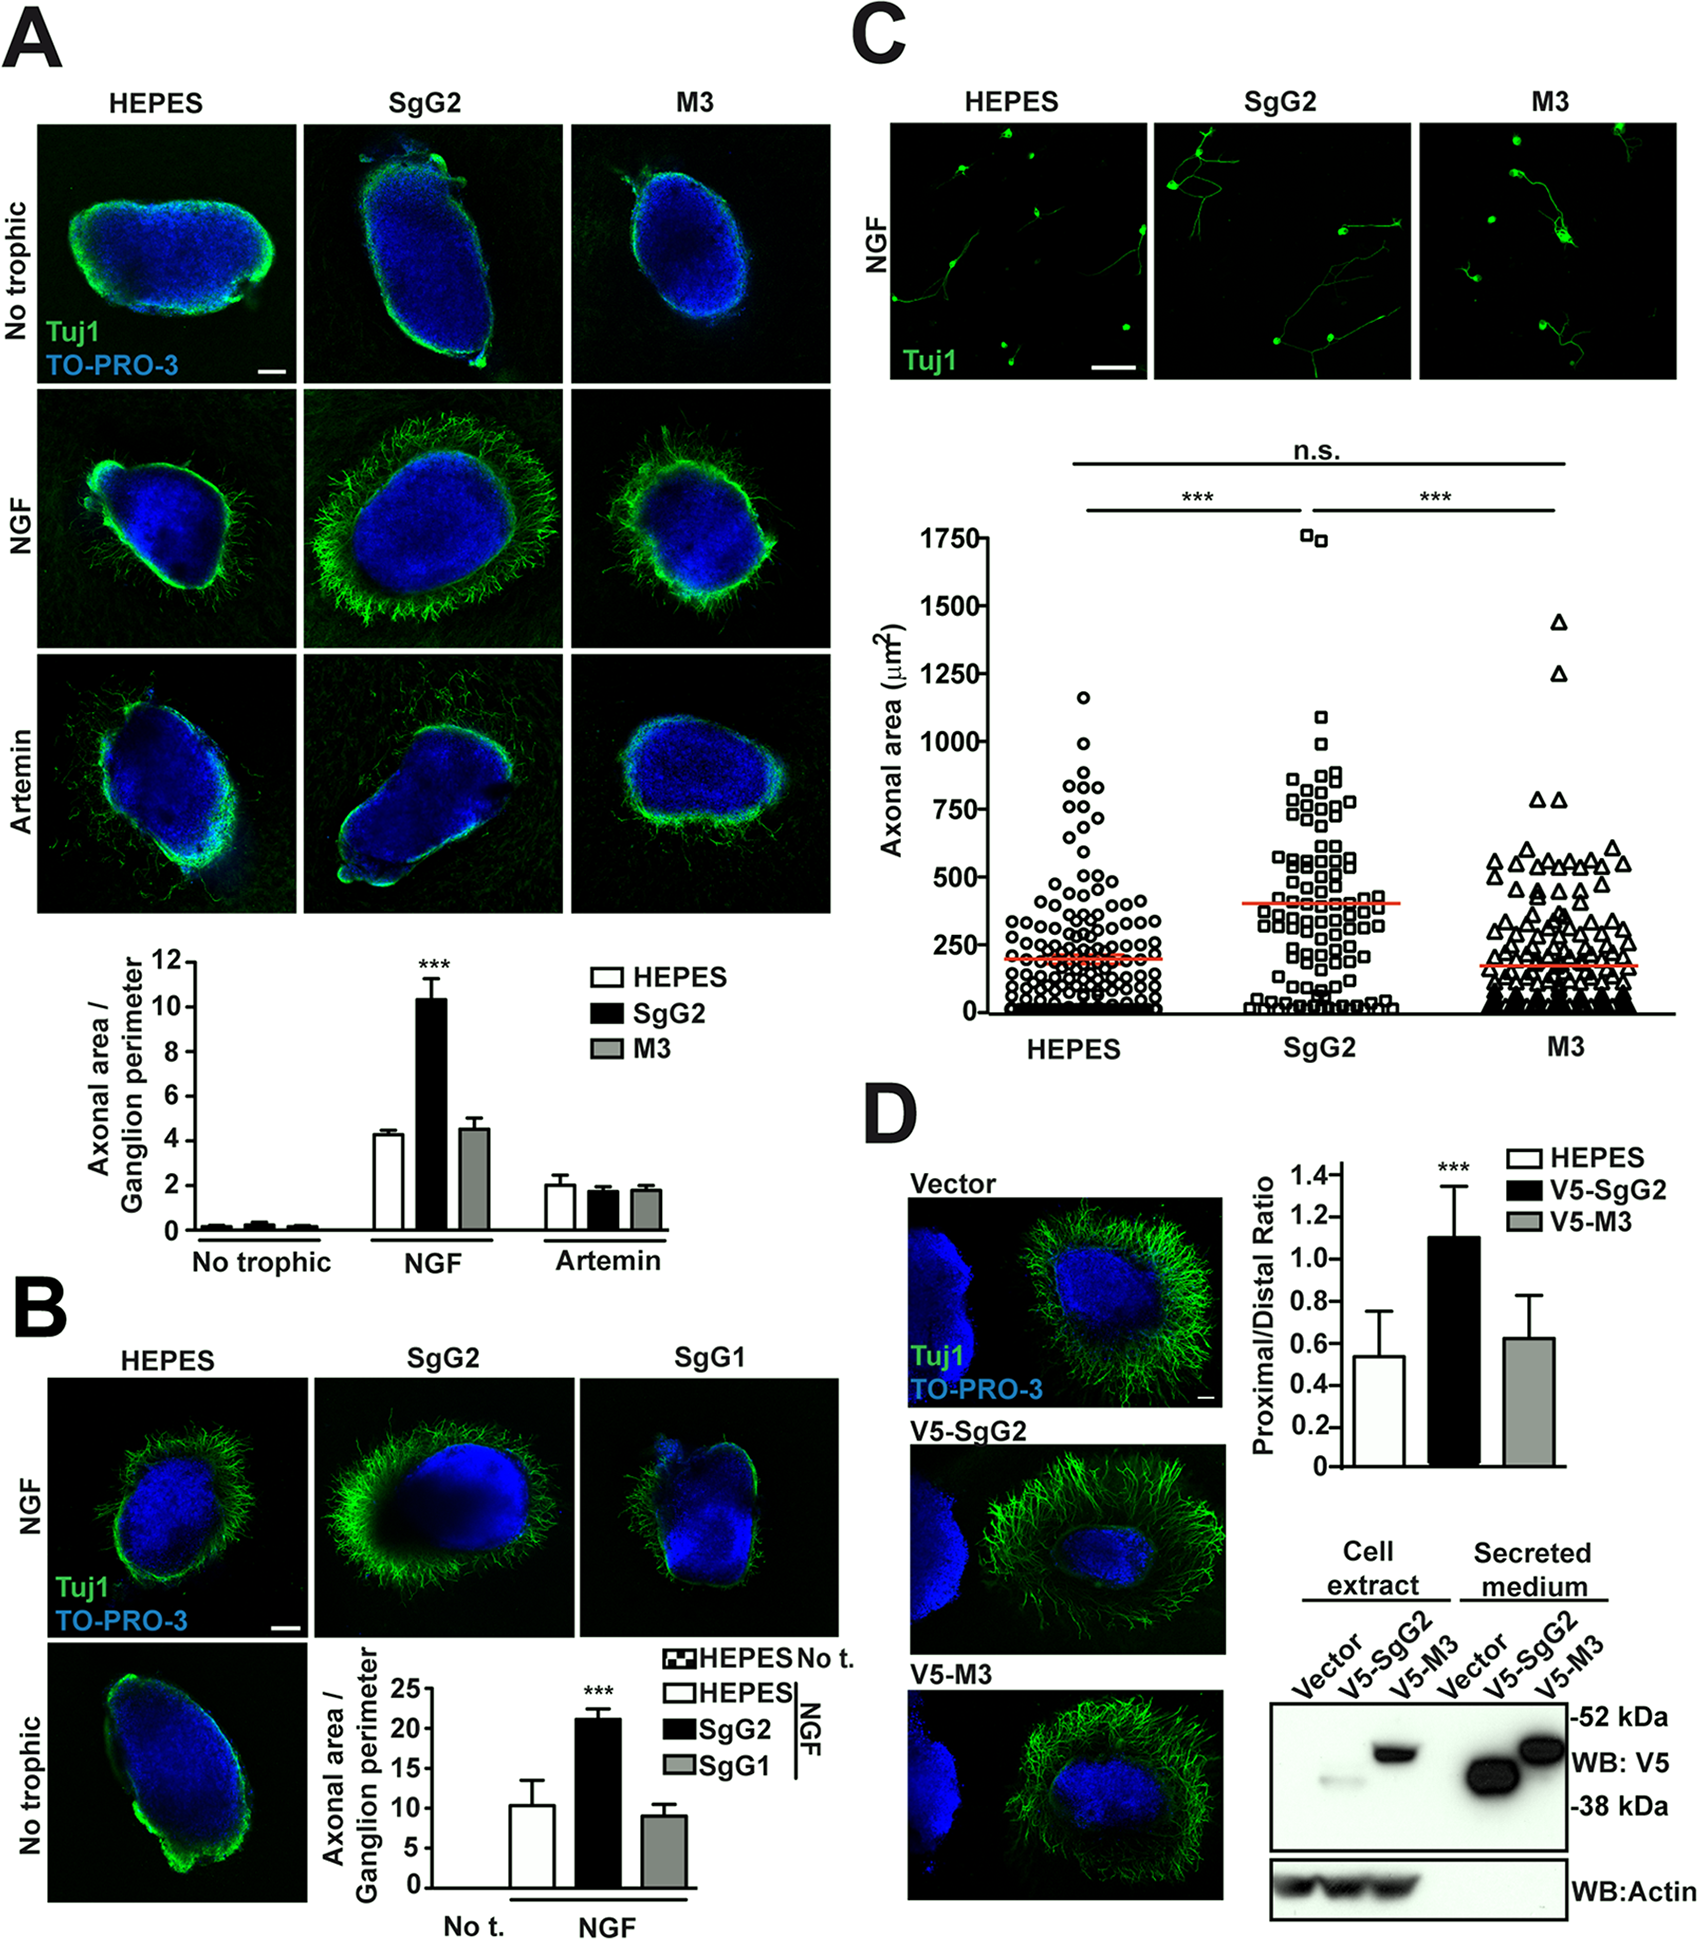 SgG2 increases NGF-dependent axonal growth.